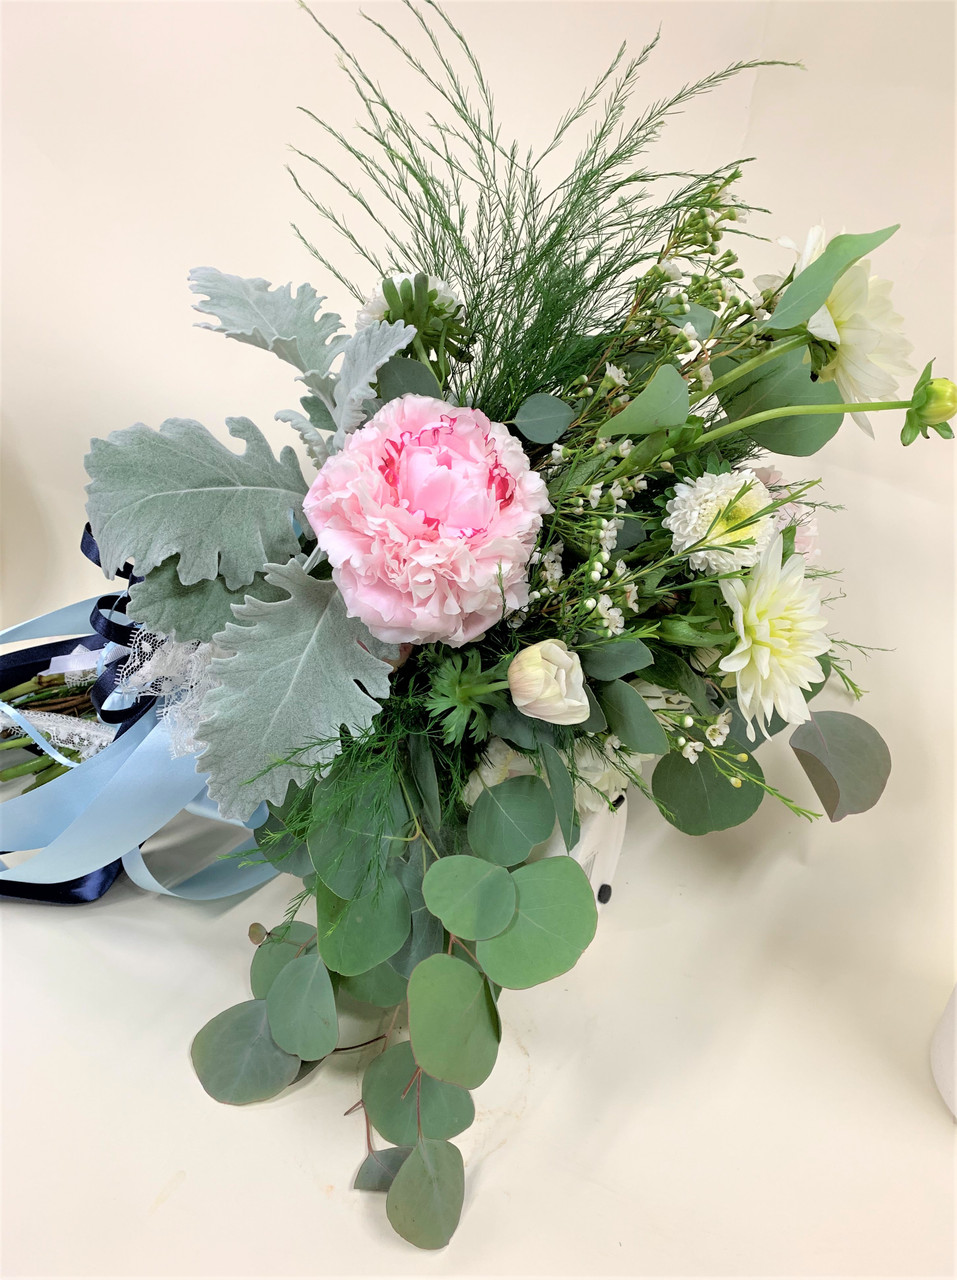 Pink Peony And Eucalyptus Bridal Bouquet Loveland Wedding Florist Earle S Flowers